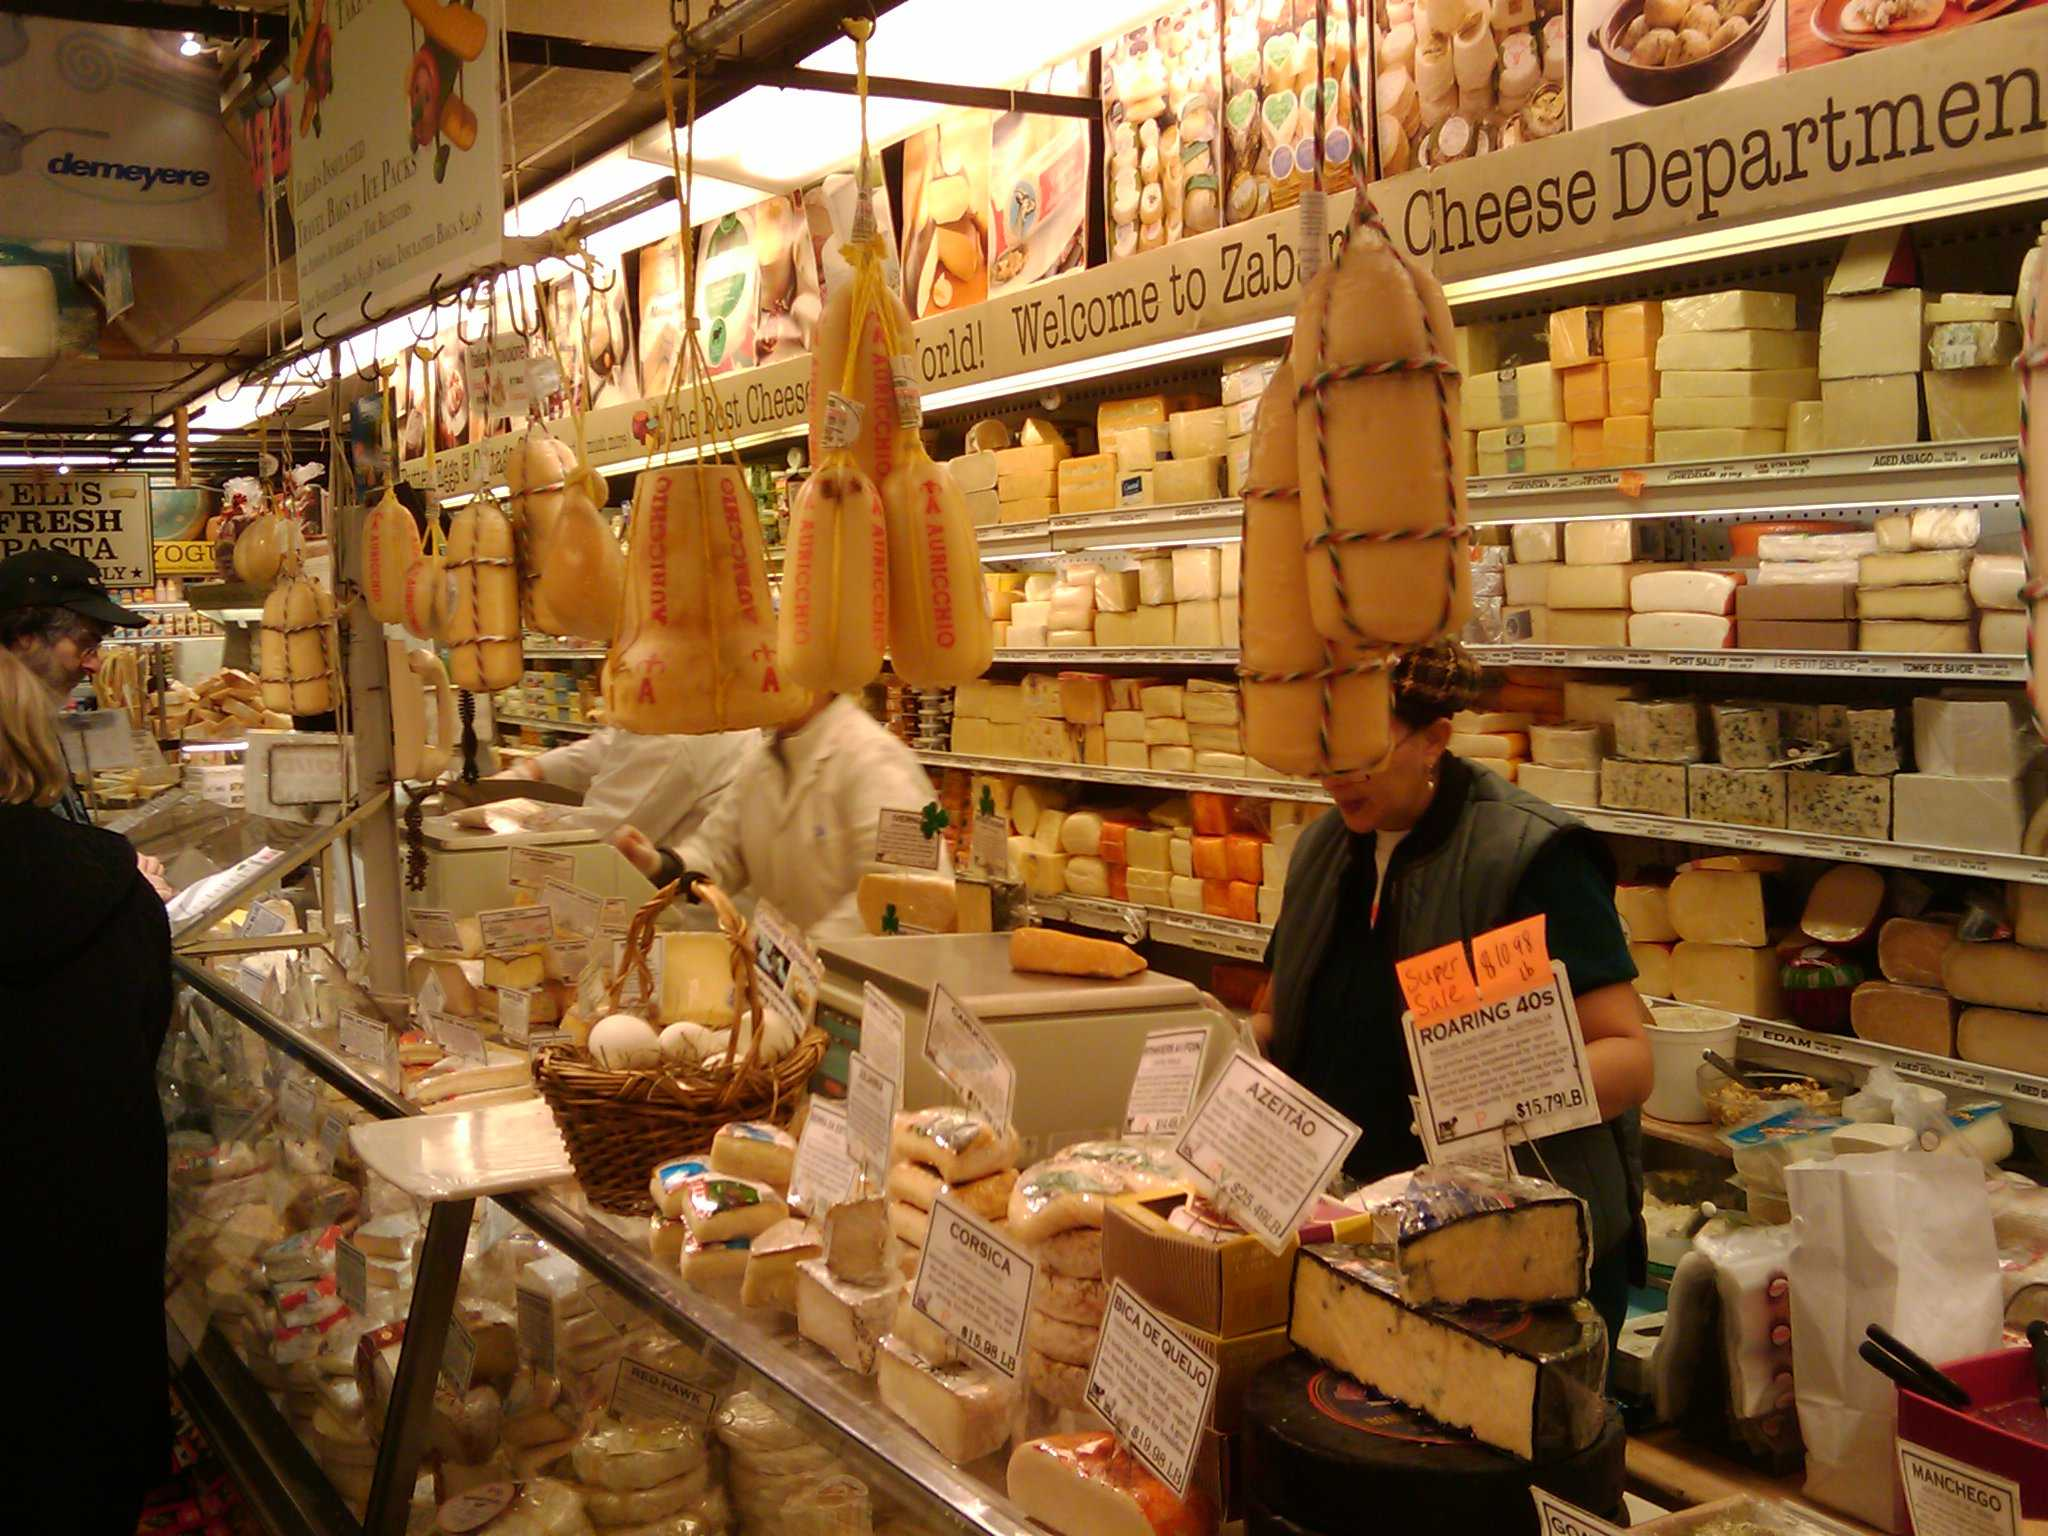 Store with lots of cheese